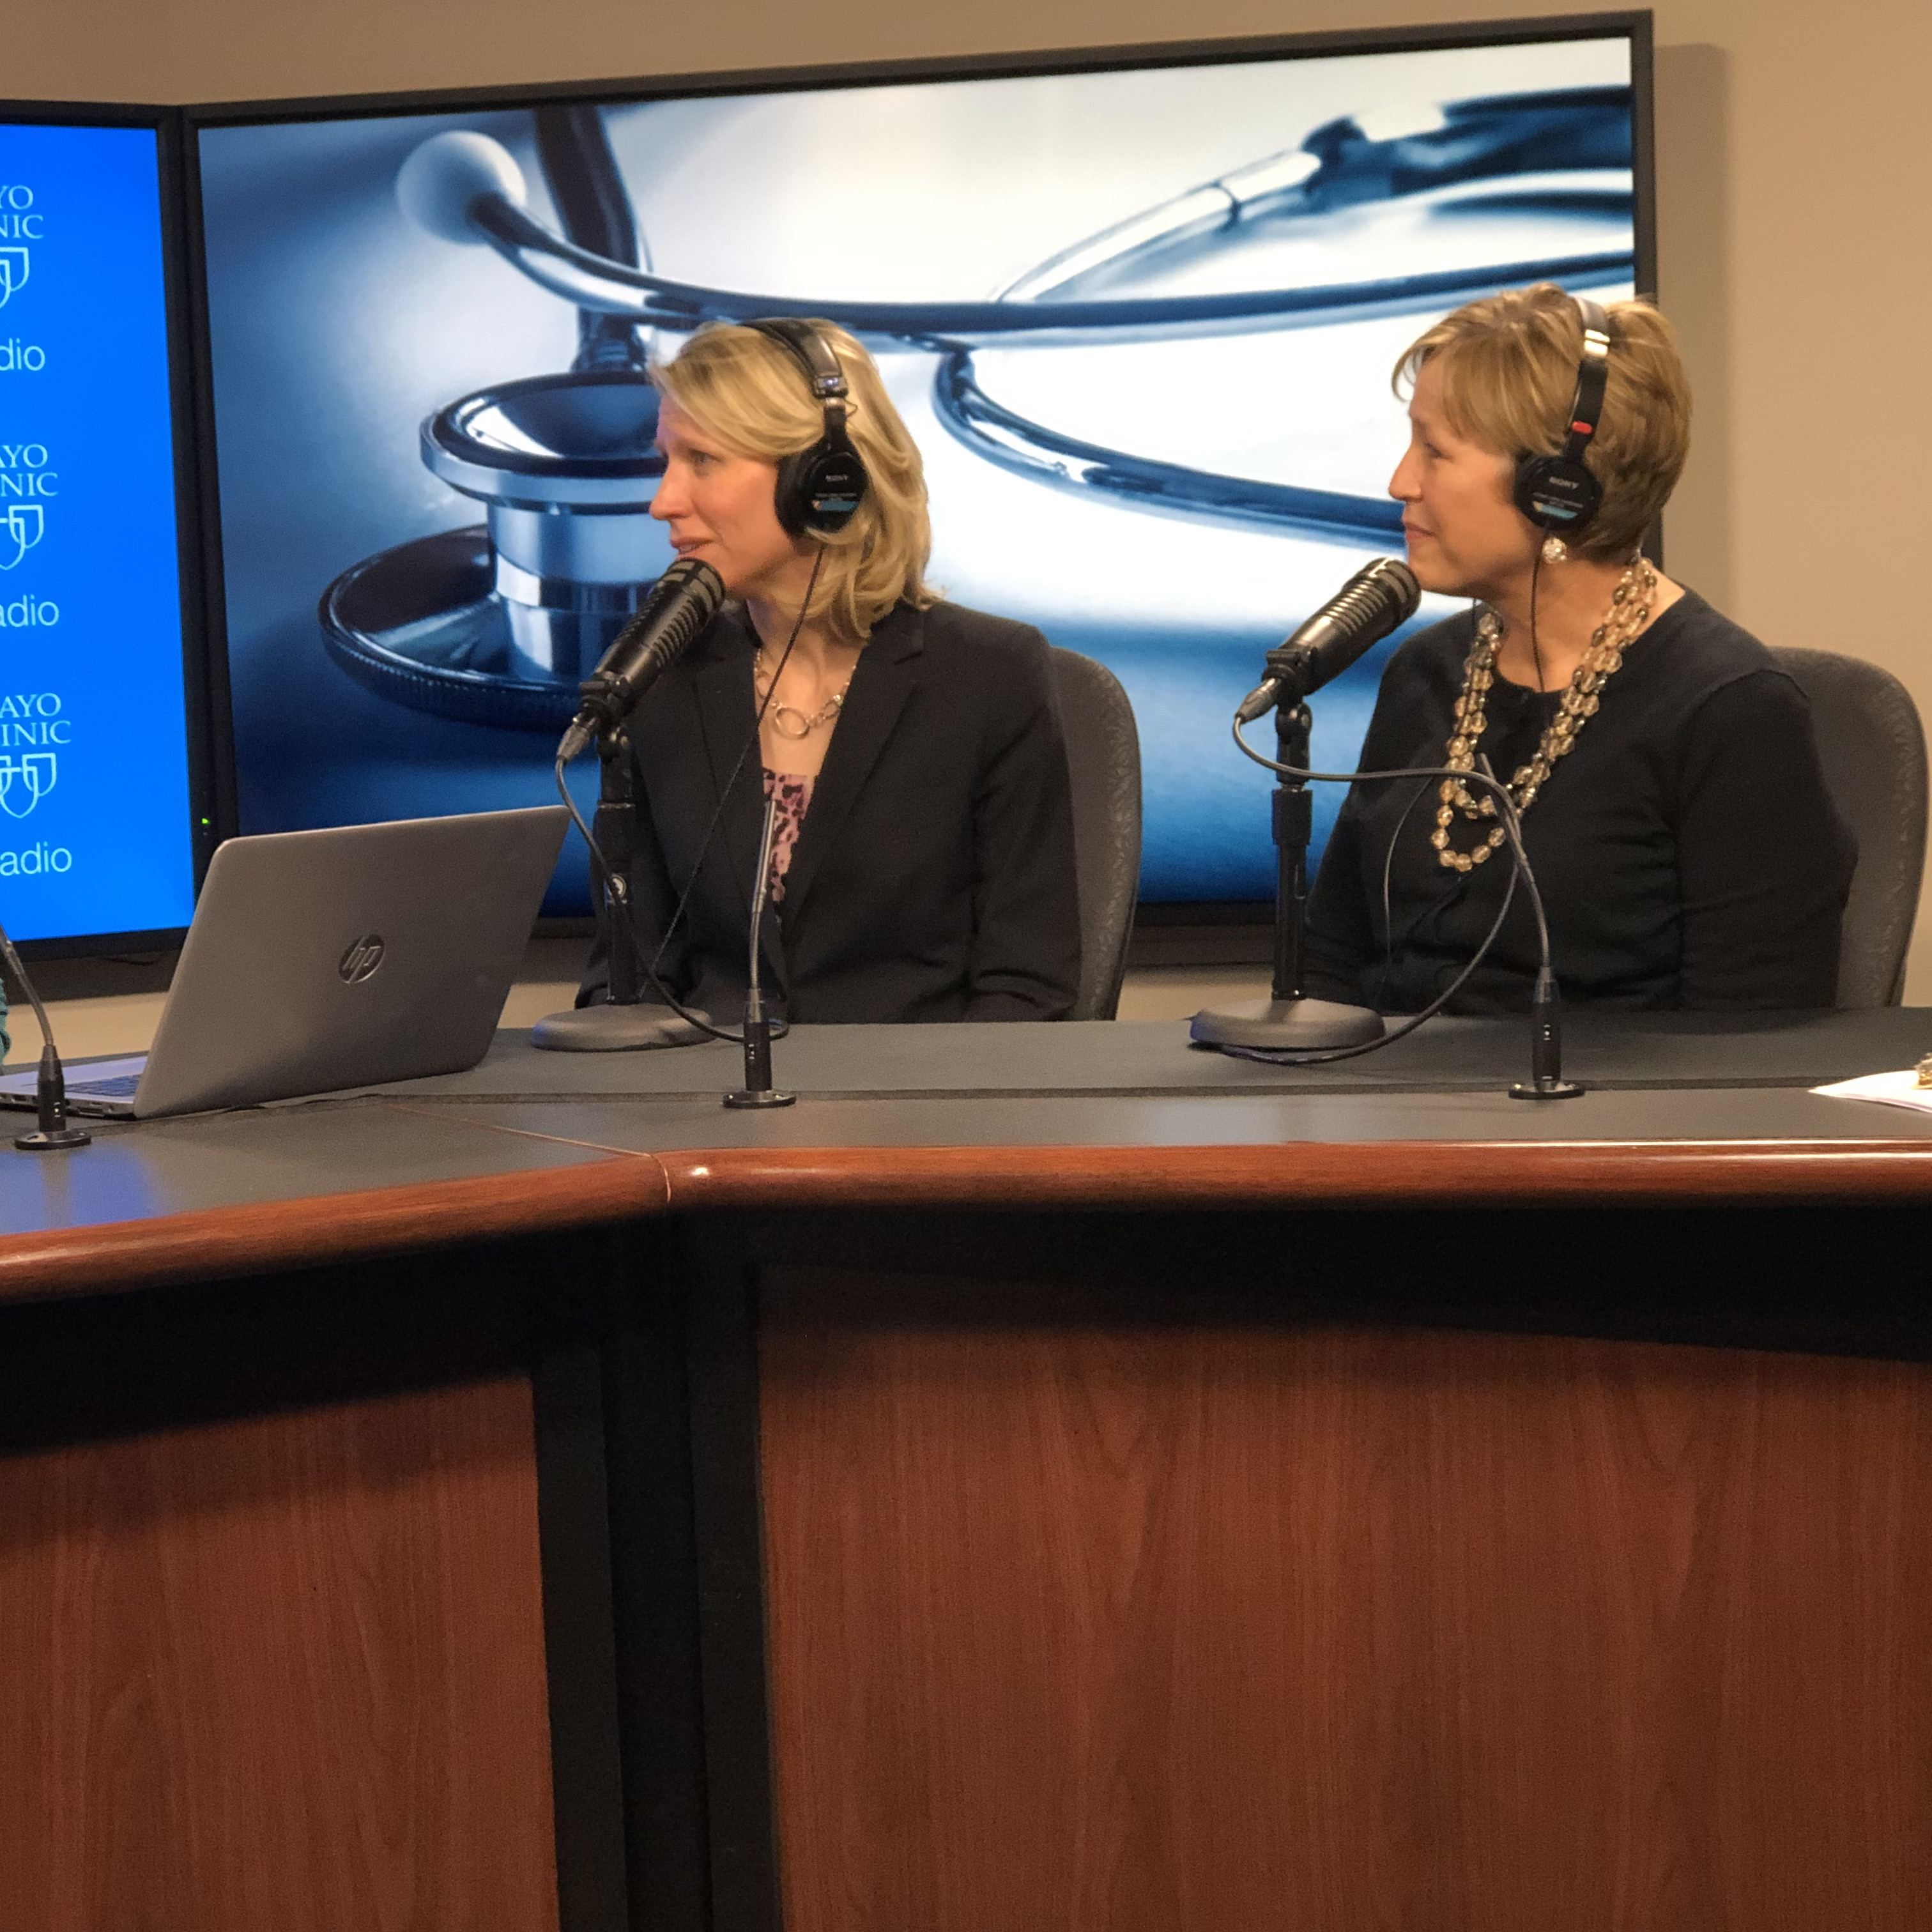 Dr. Carrie Schinstock and Kay Kosberg being interviewed on Mayo Clinic Radio